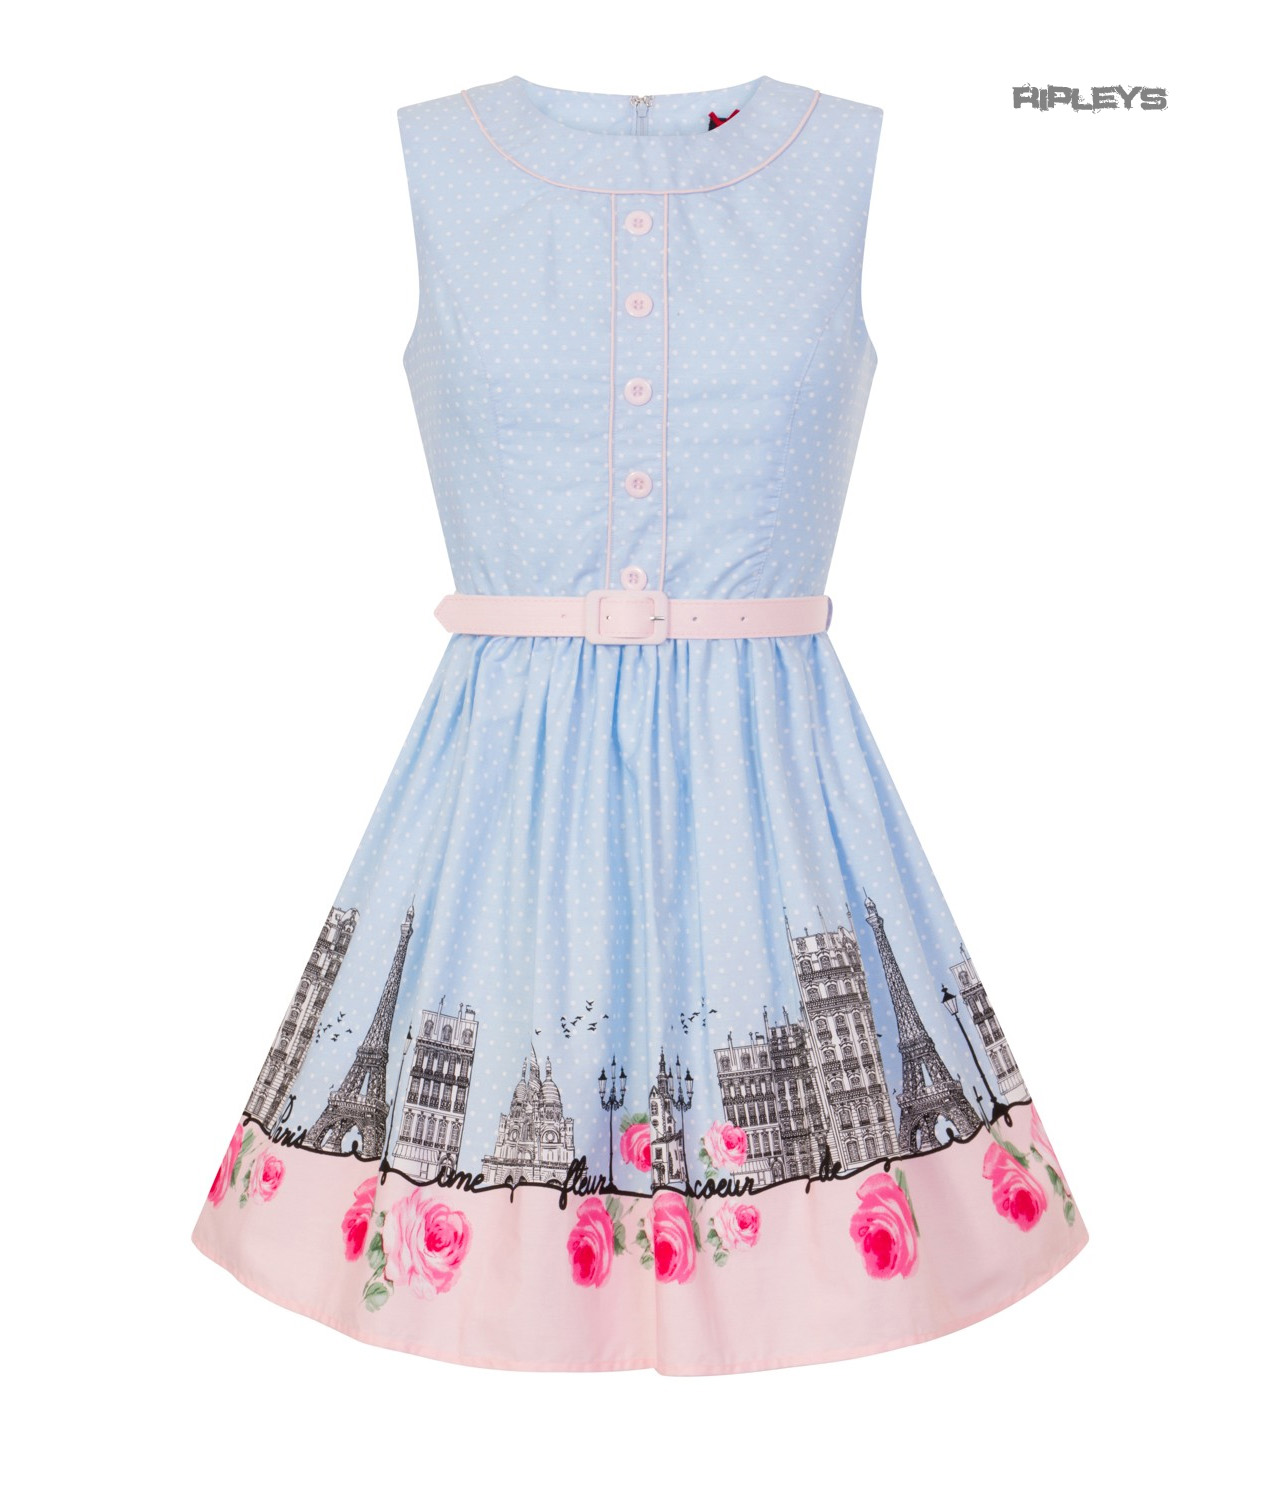 Hell-Bunny-50s-Vintage-Blue-Polka-Dot-PANAME-Mini-Dress-Paris-All-Sizes thumbnail 10